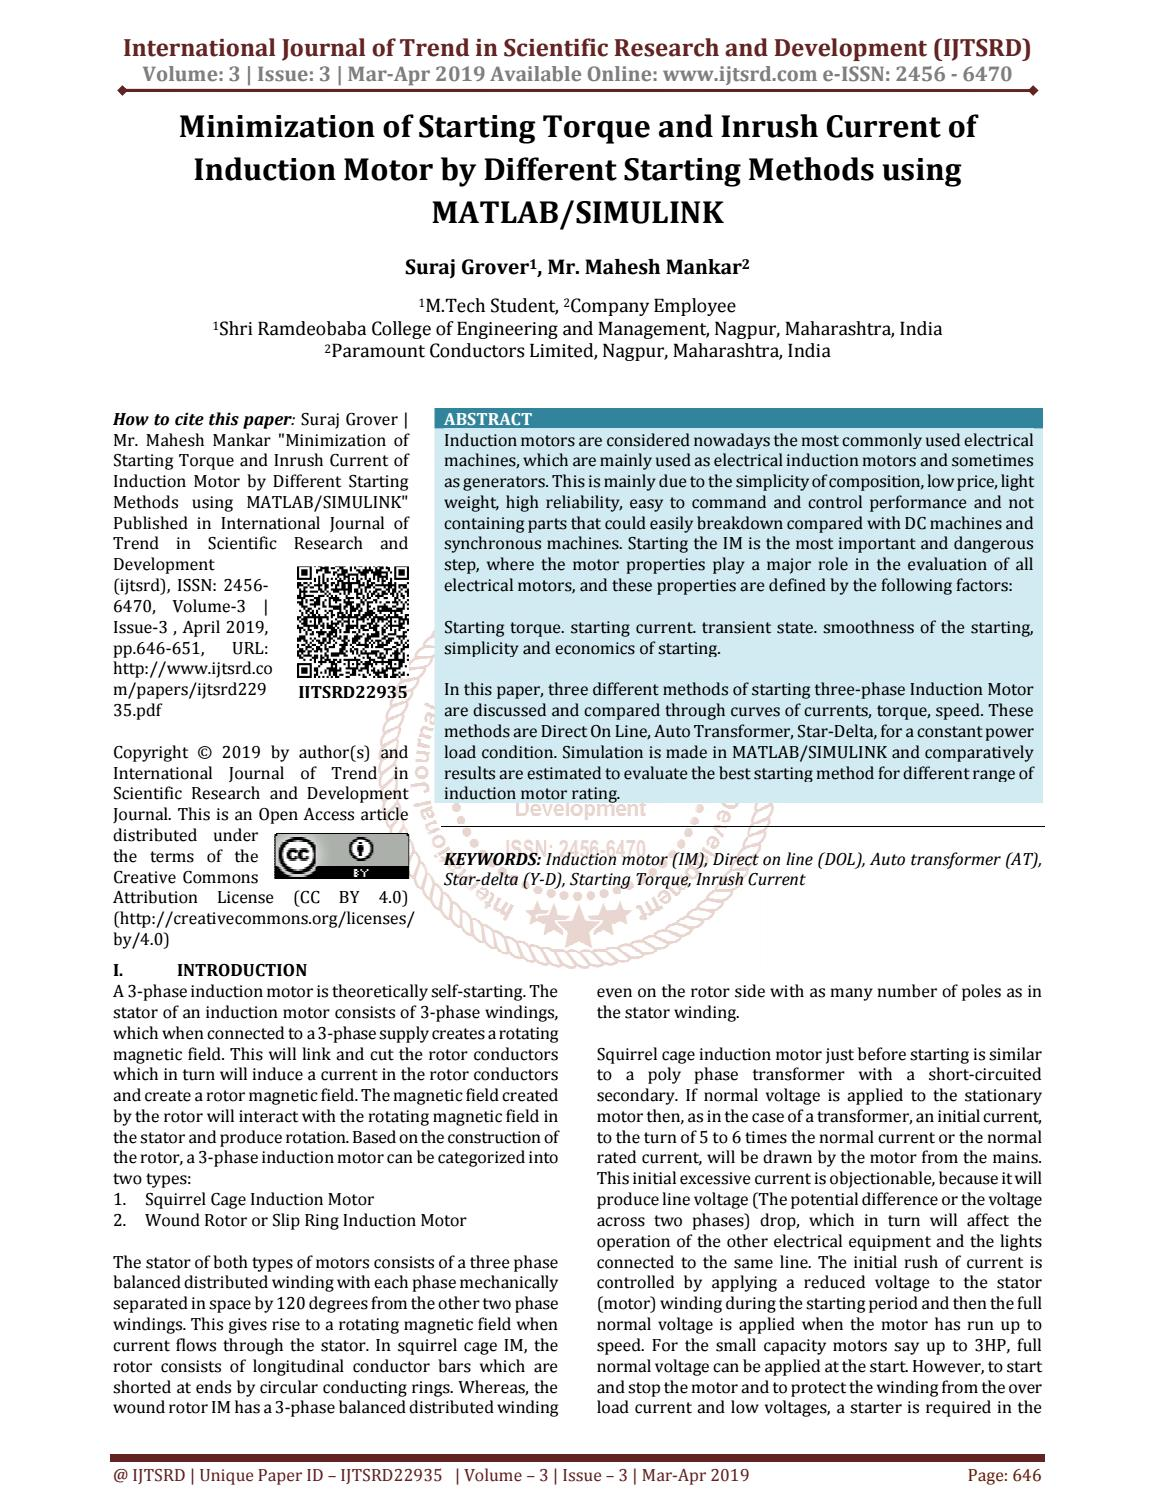 Minimization of Starting Torque and Inrush Current of